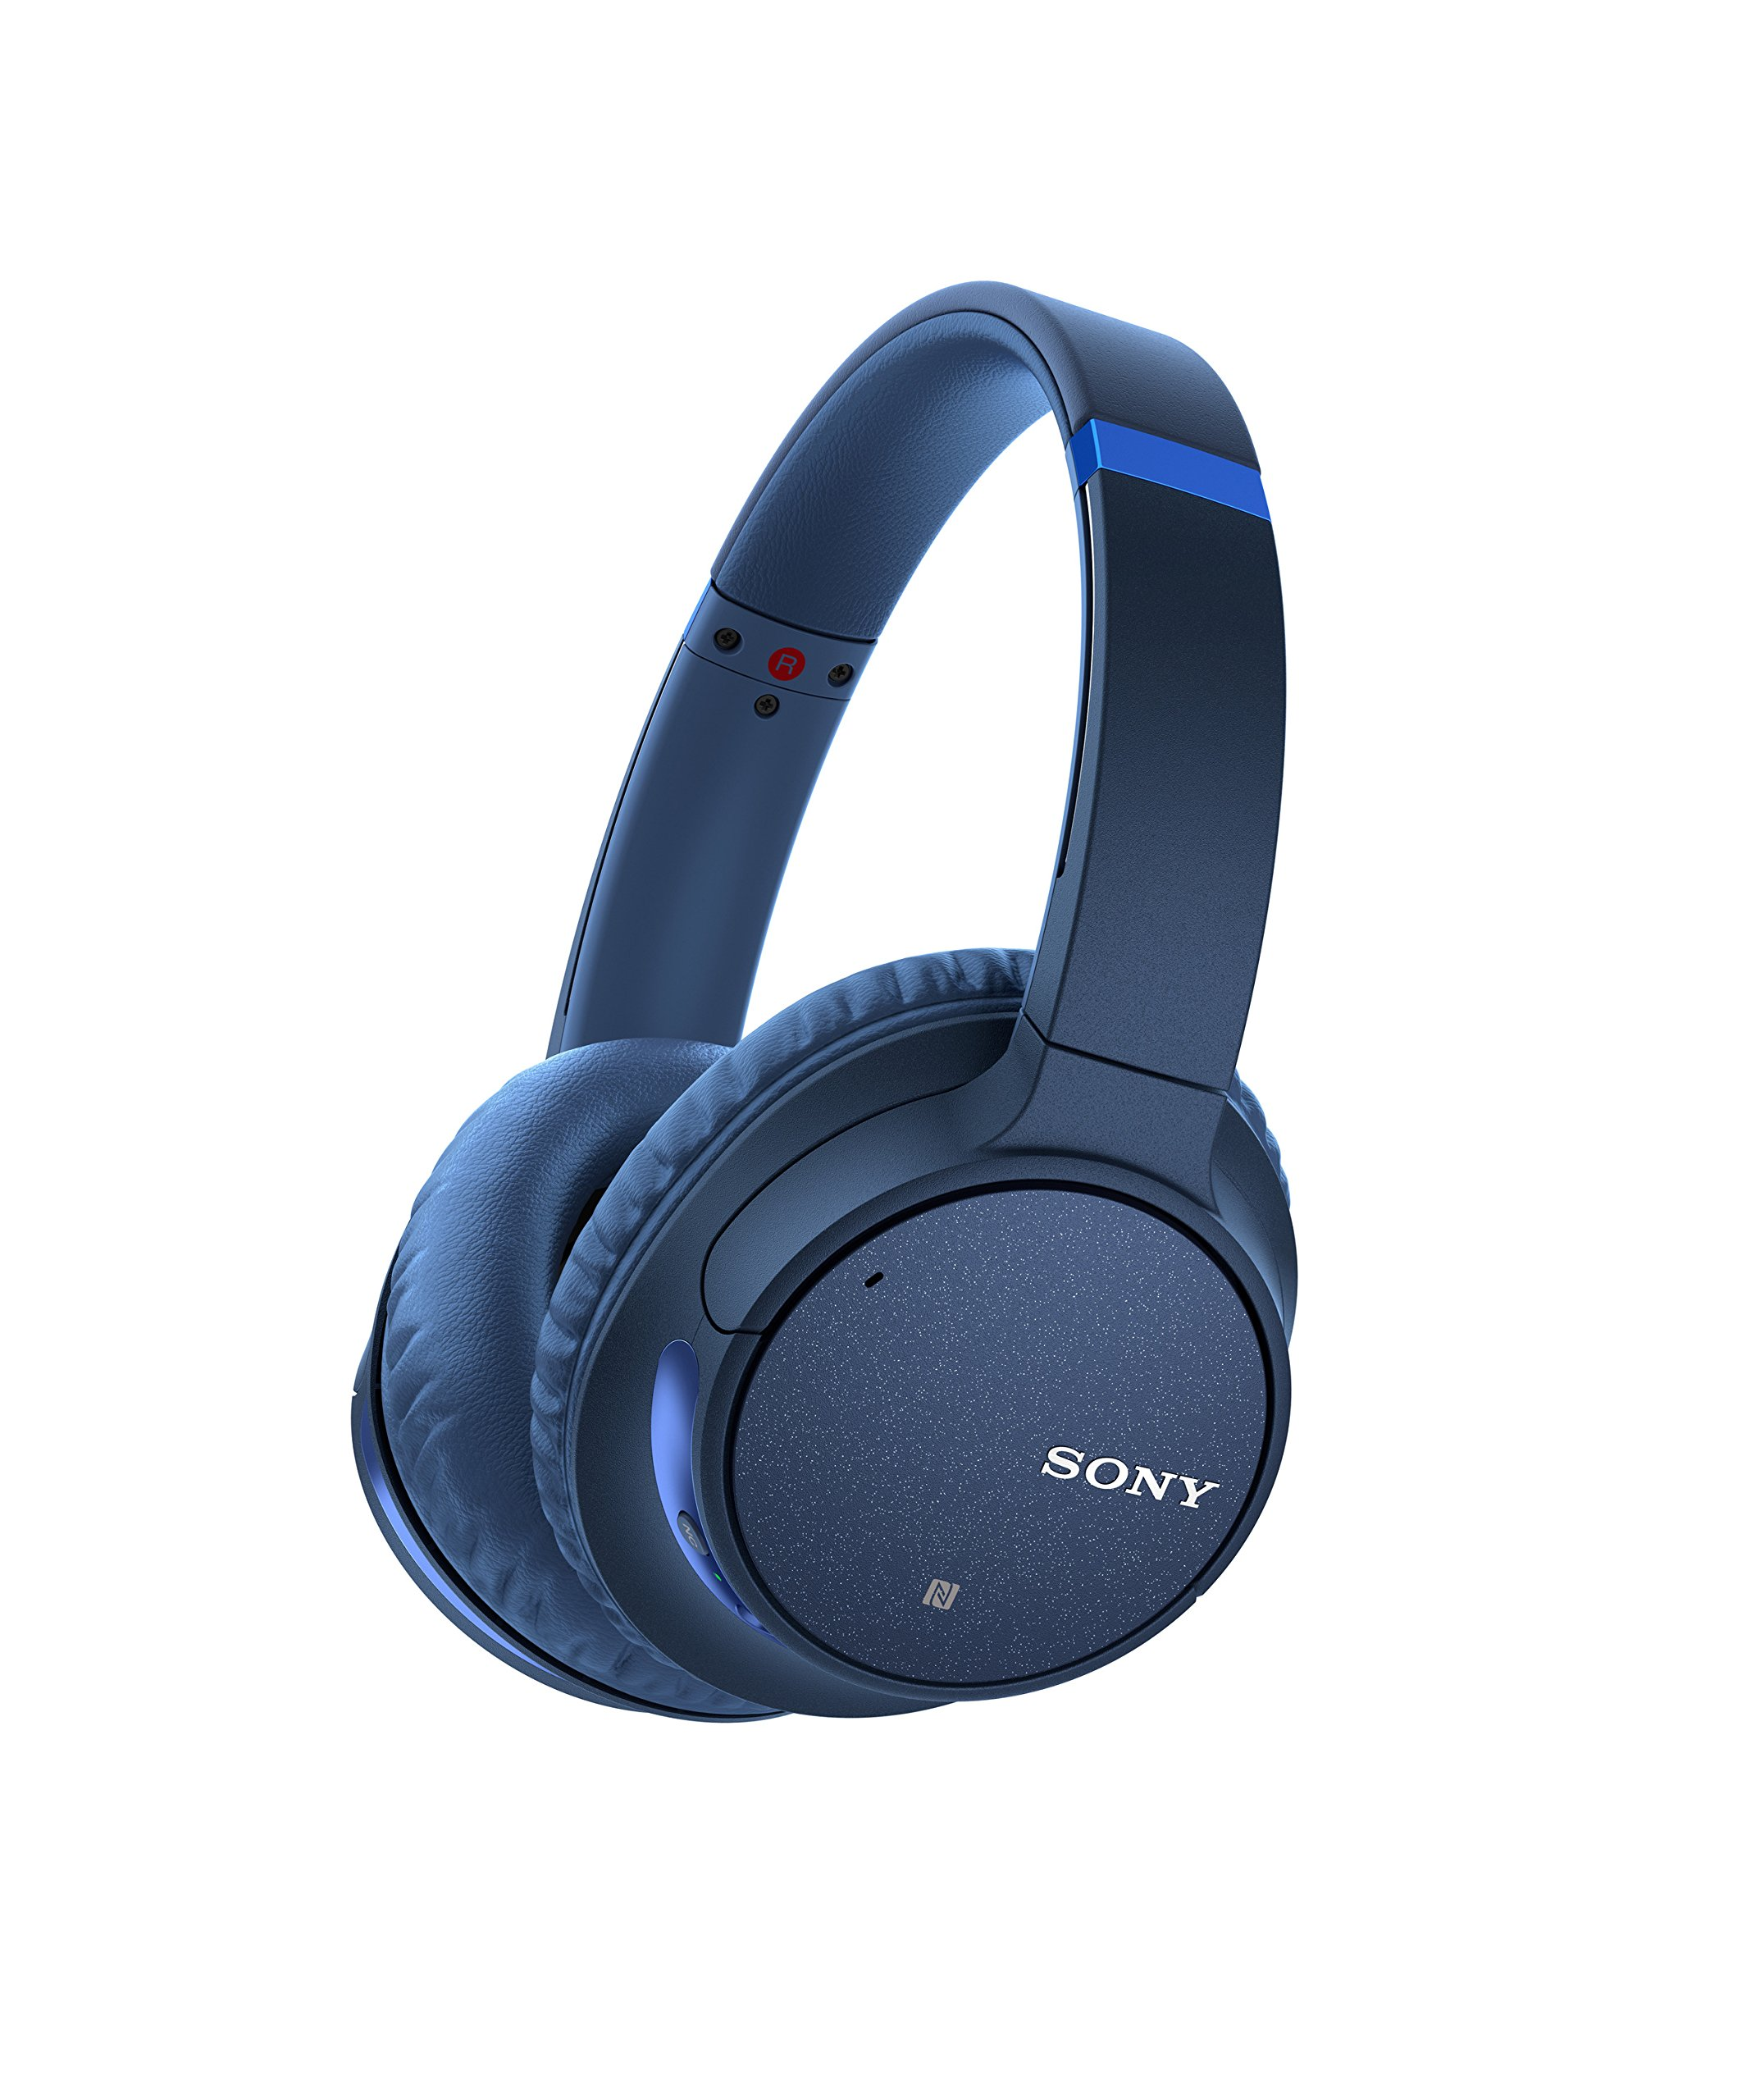 Amazon Com Sony Noise Cancelling Headphones Whch700n Wireless Bluetooth Over The Ear Headset With Mic For Phone Call And Alexa Voice Control Blue Electronics